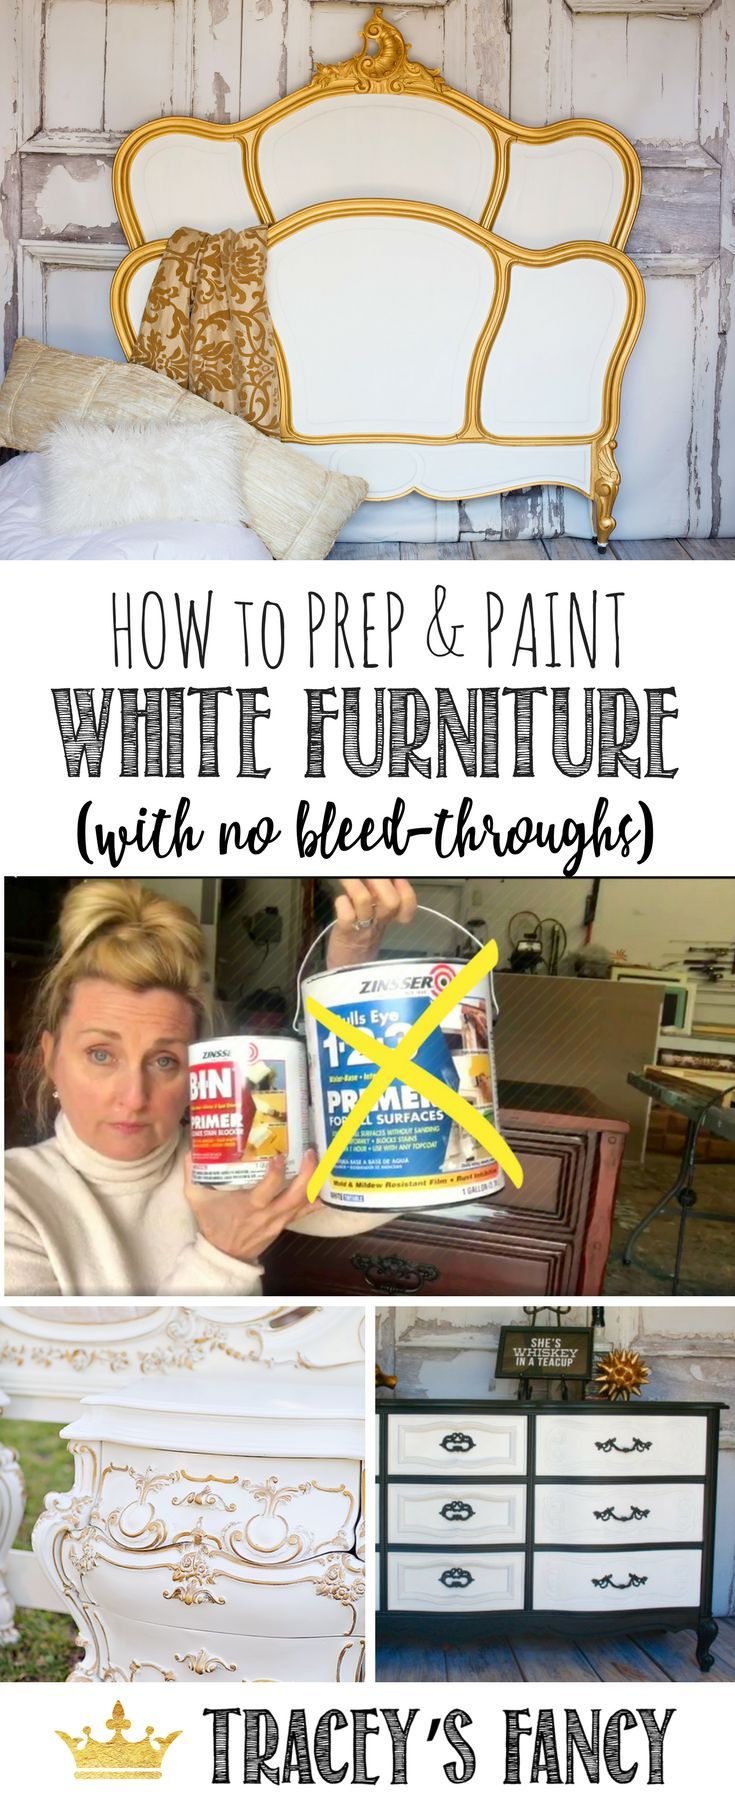 How to Prep & Paint White Furniture with no wood tannins pulling through and no bleed-throughs by Tracey's Fancy | Furniture Painting Tips | How to Paint Furniture | White Painted Furniture Ideas | Shellac + Primer